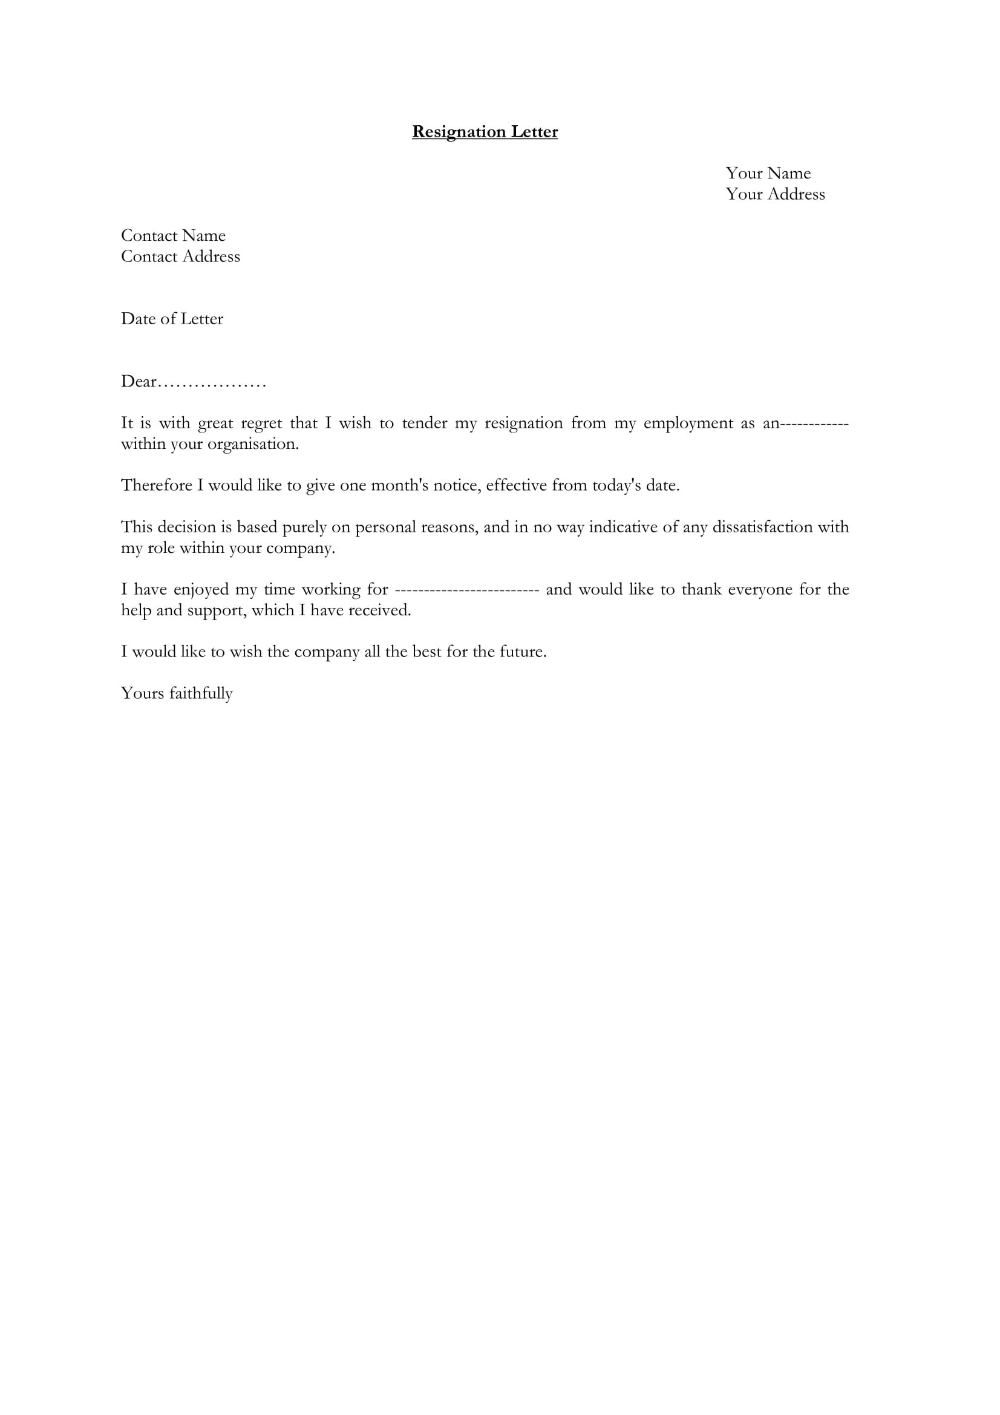 A Resignation Letter Examples from i.pinimg.com